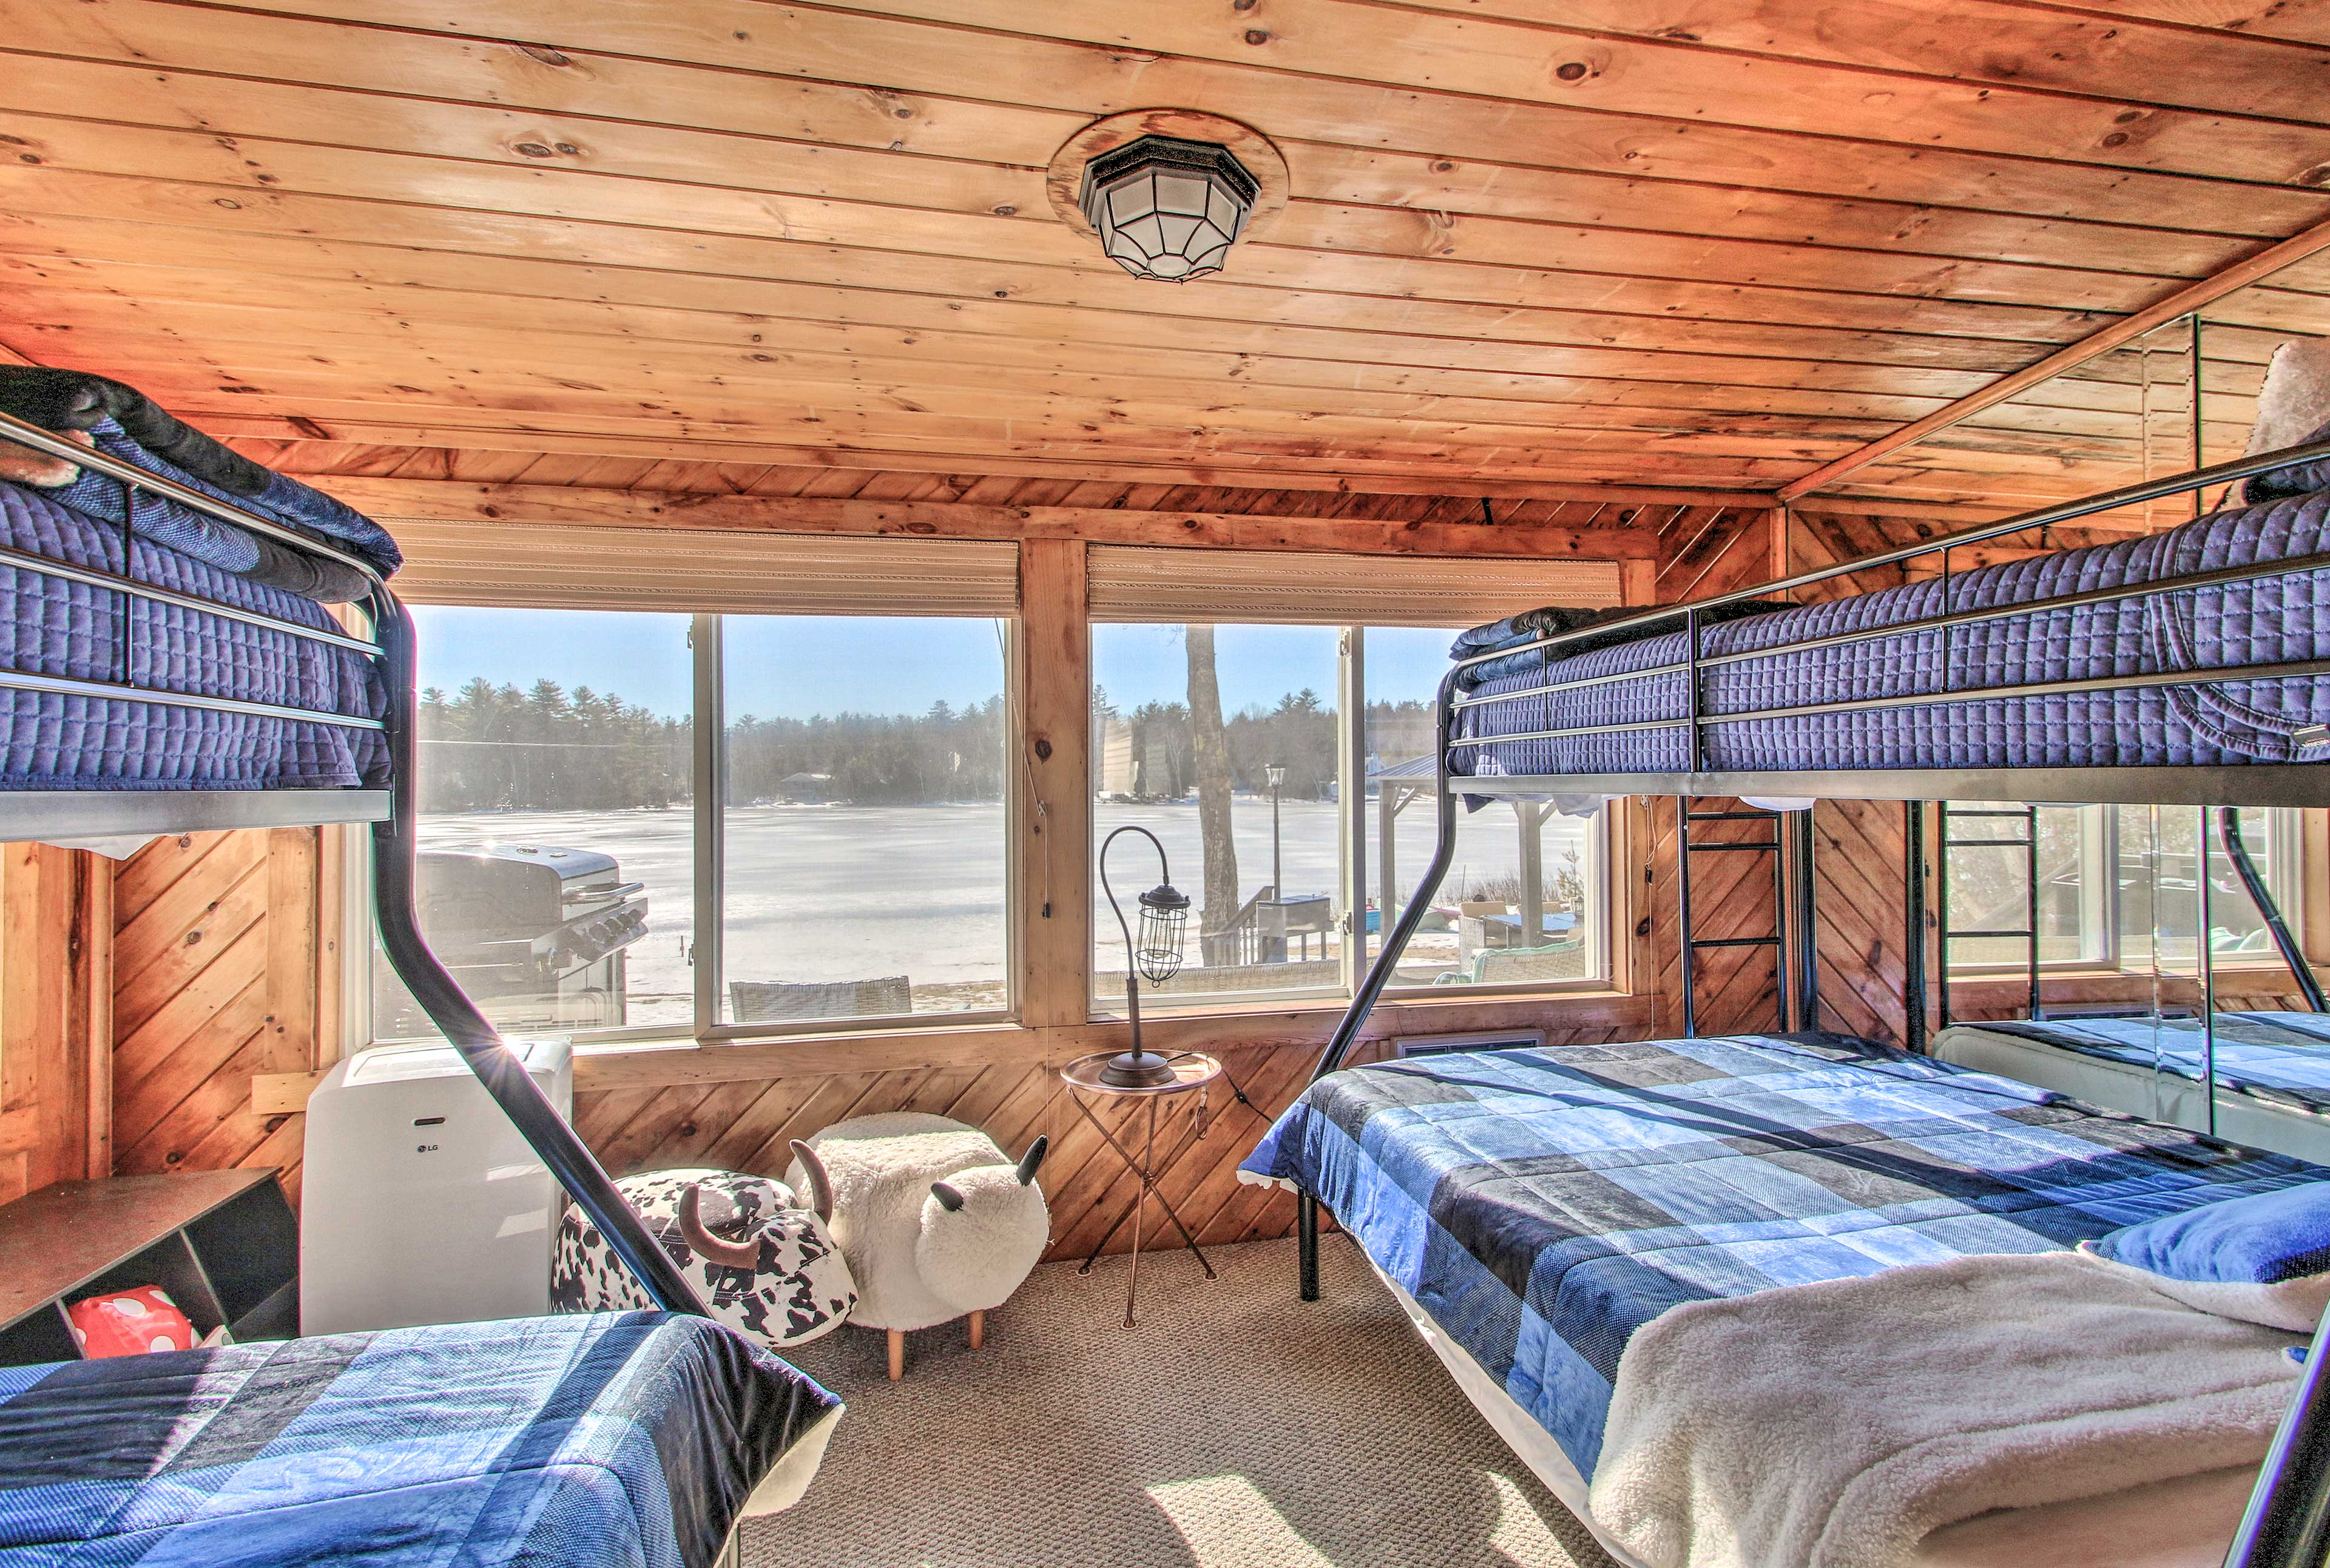 Flip a coin to see who gets top bunk!